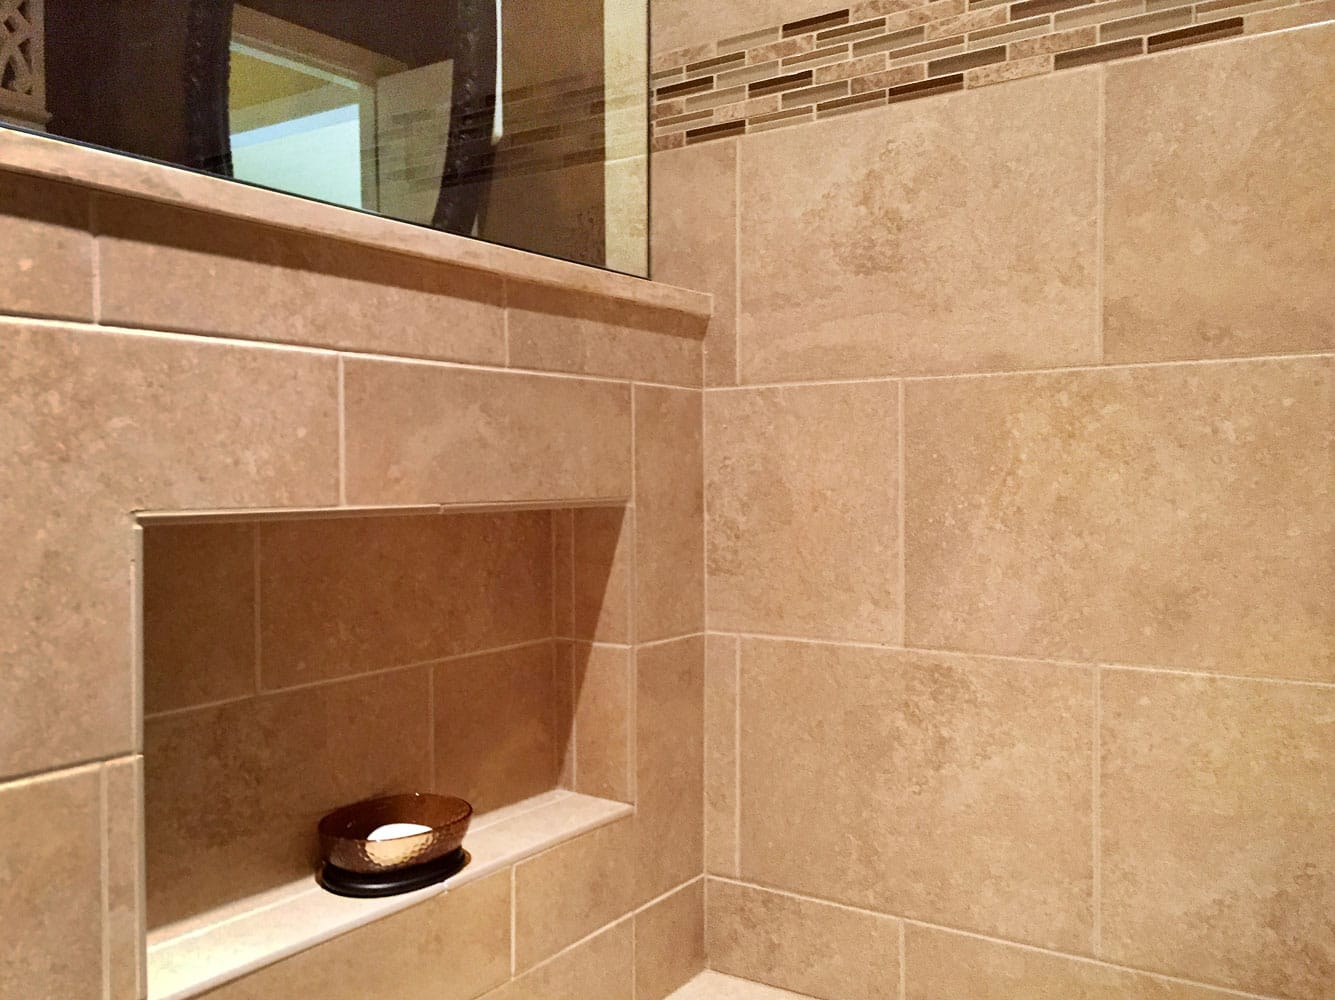 lakeshore-bathroom-detail